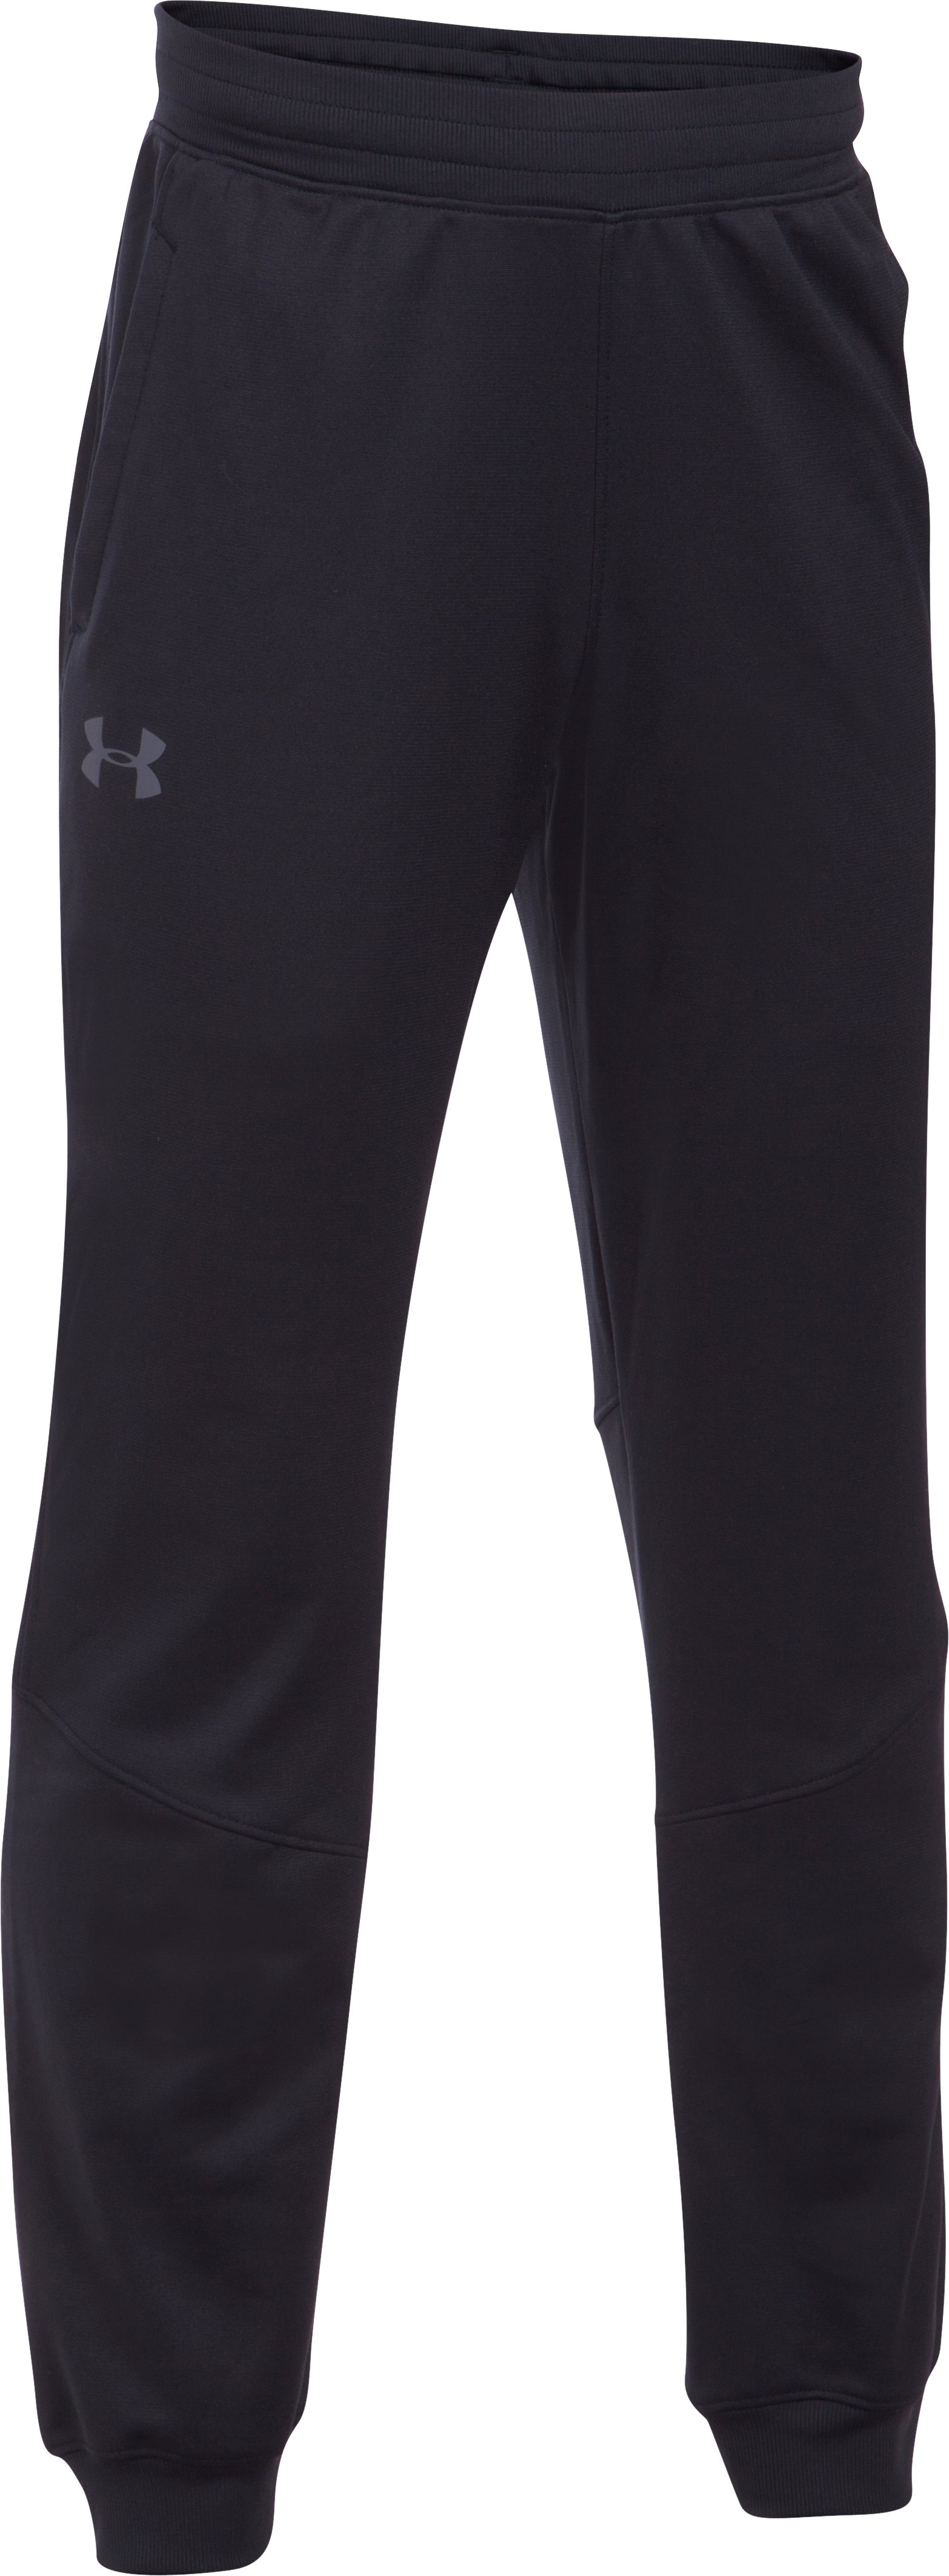 Boys' UA Interval Warm-Up Jogger, Black